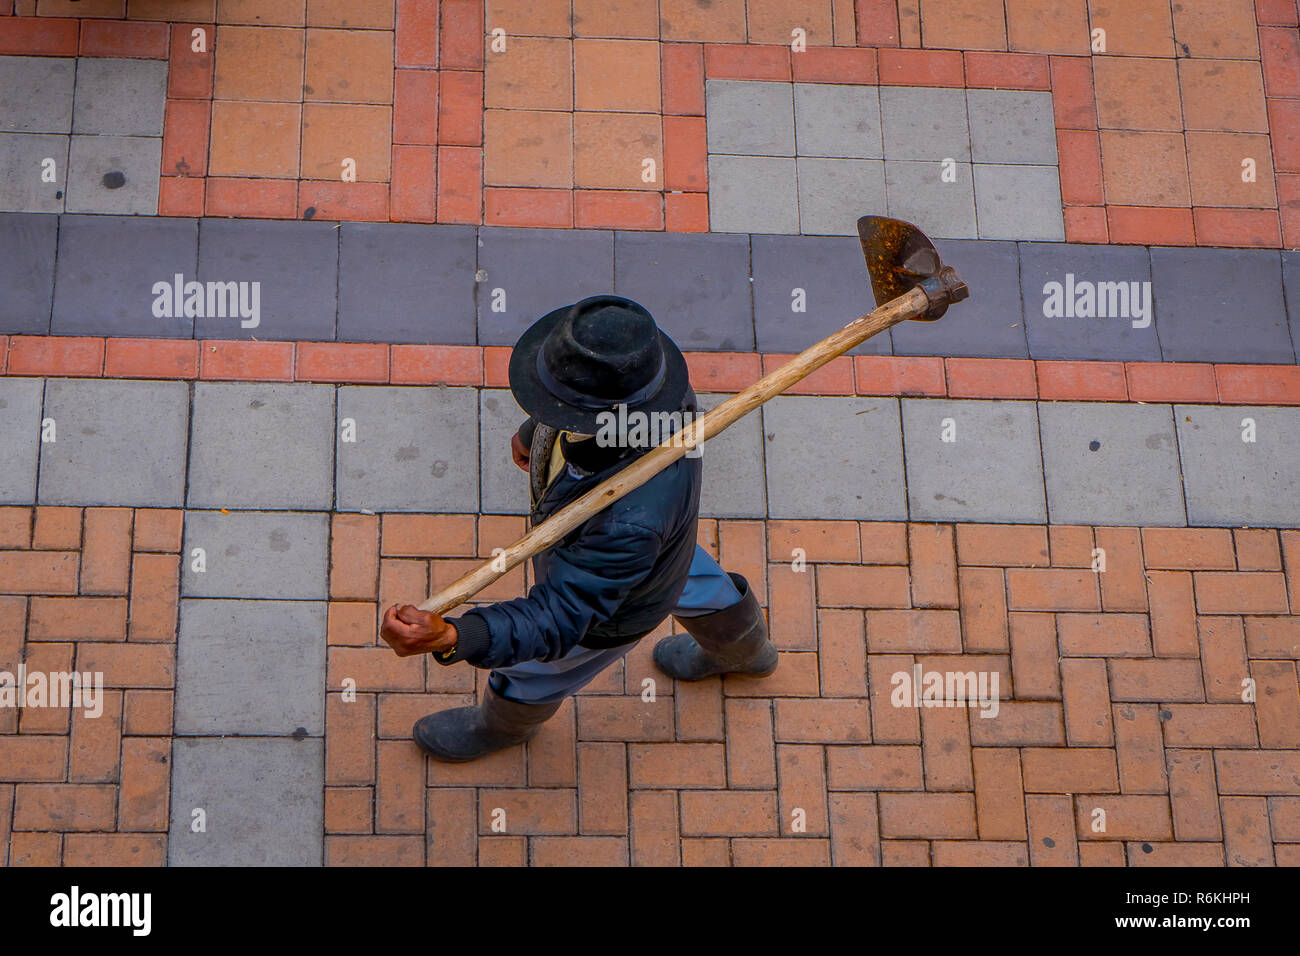 Above view of unidentified indigenous man walking in the sidewalk and holding in his back a farm machine, located in the city of Cotacachi in Ecuador. Stock Photo